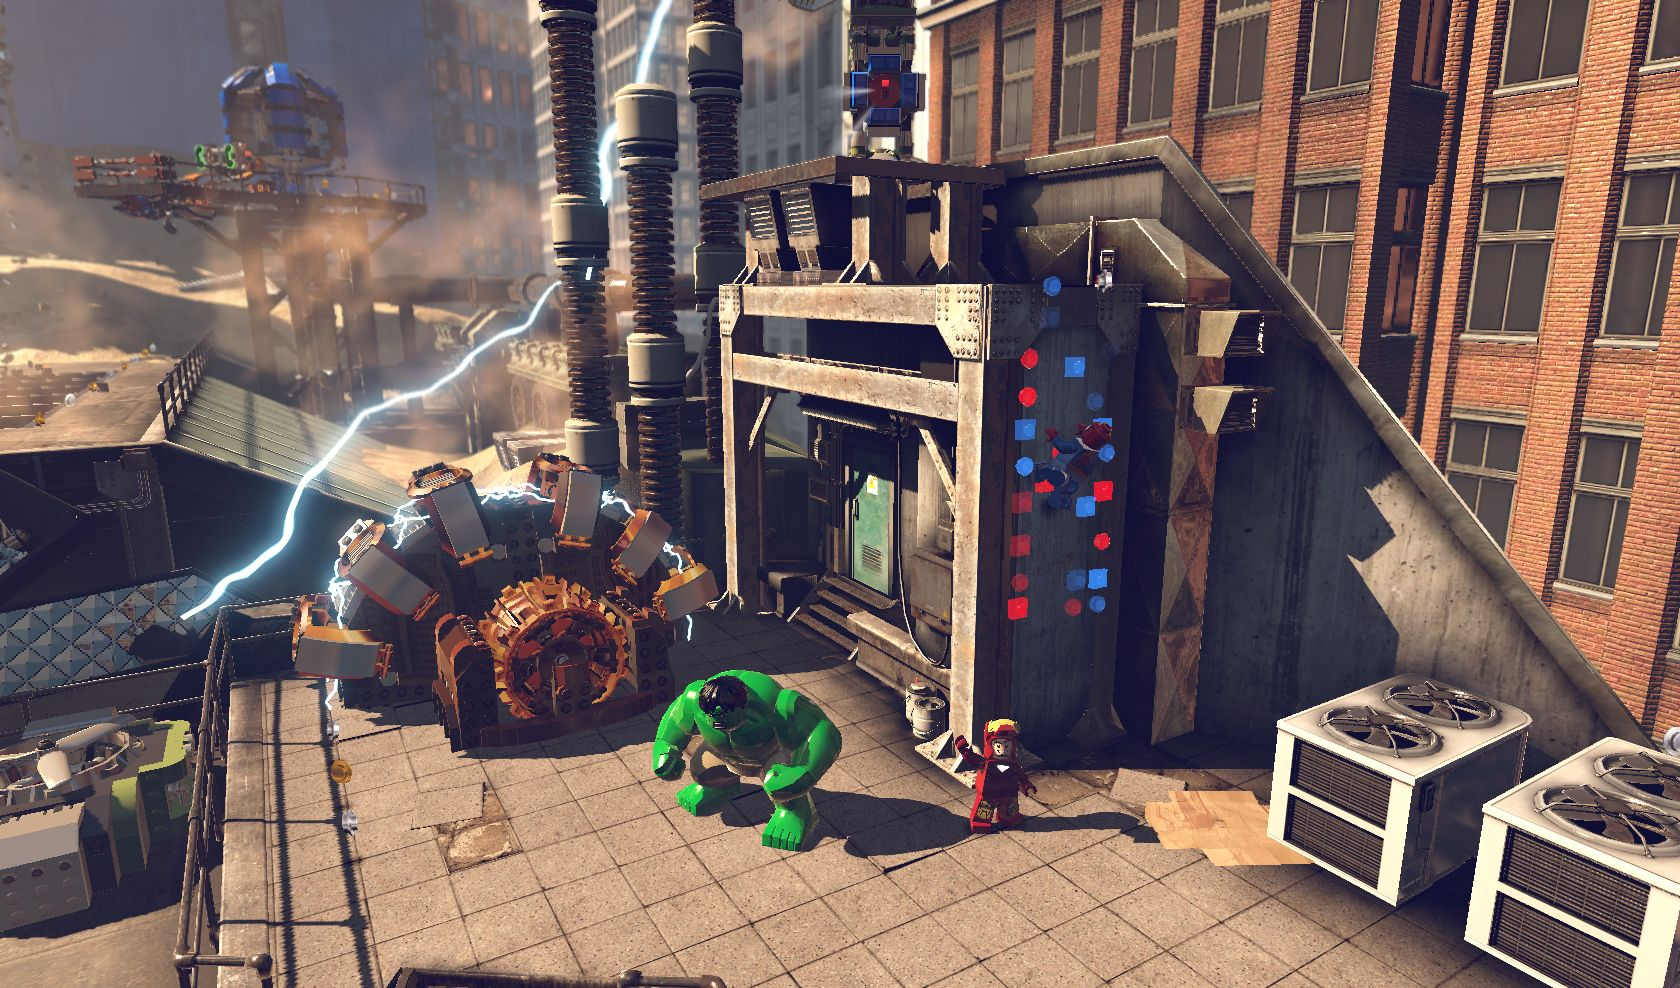 Lego Marvel Super Heroes features